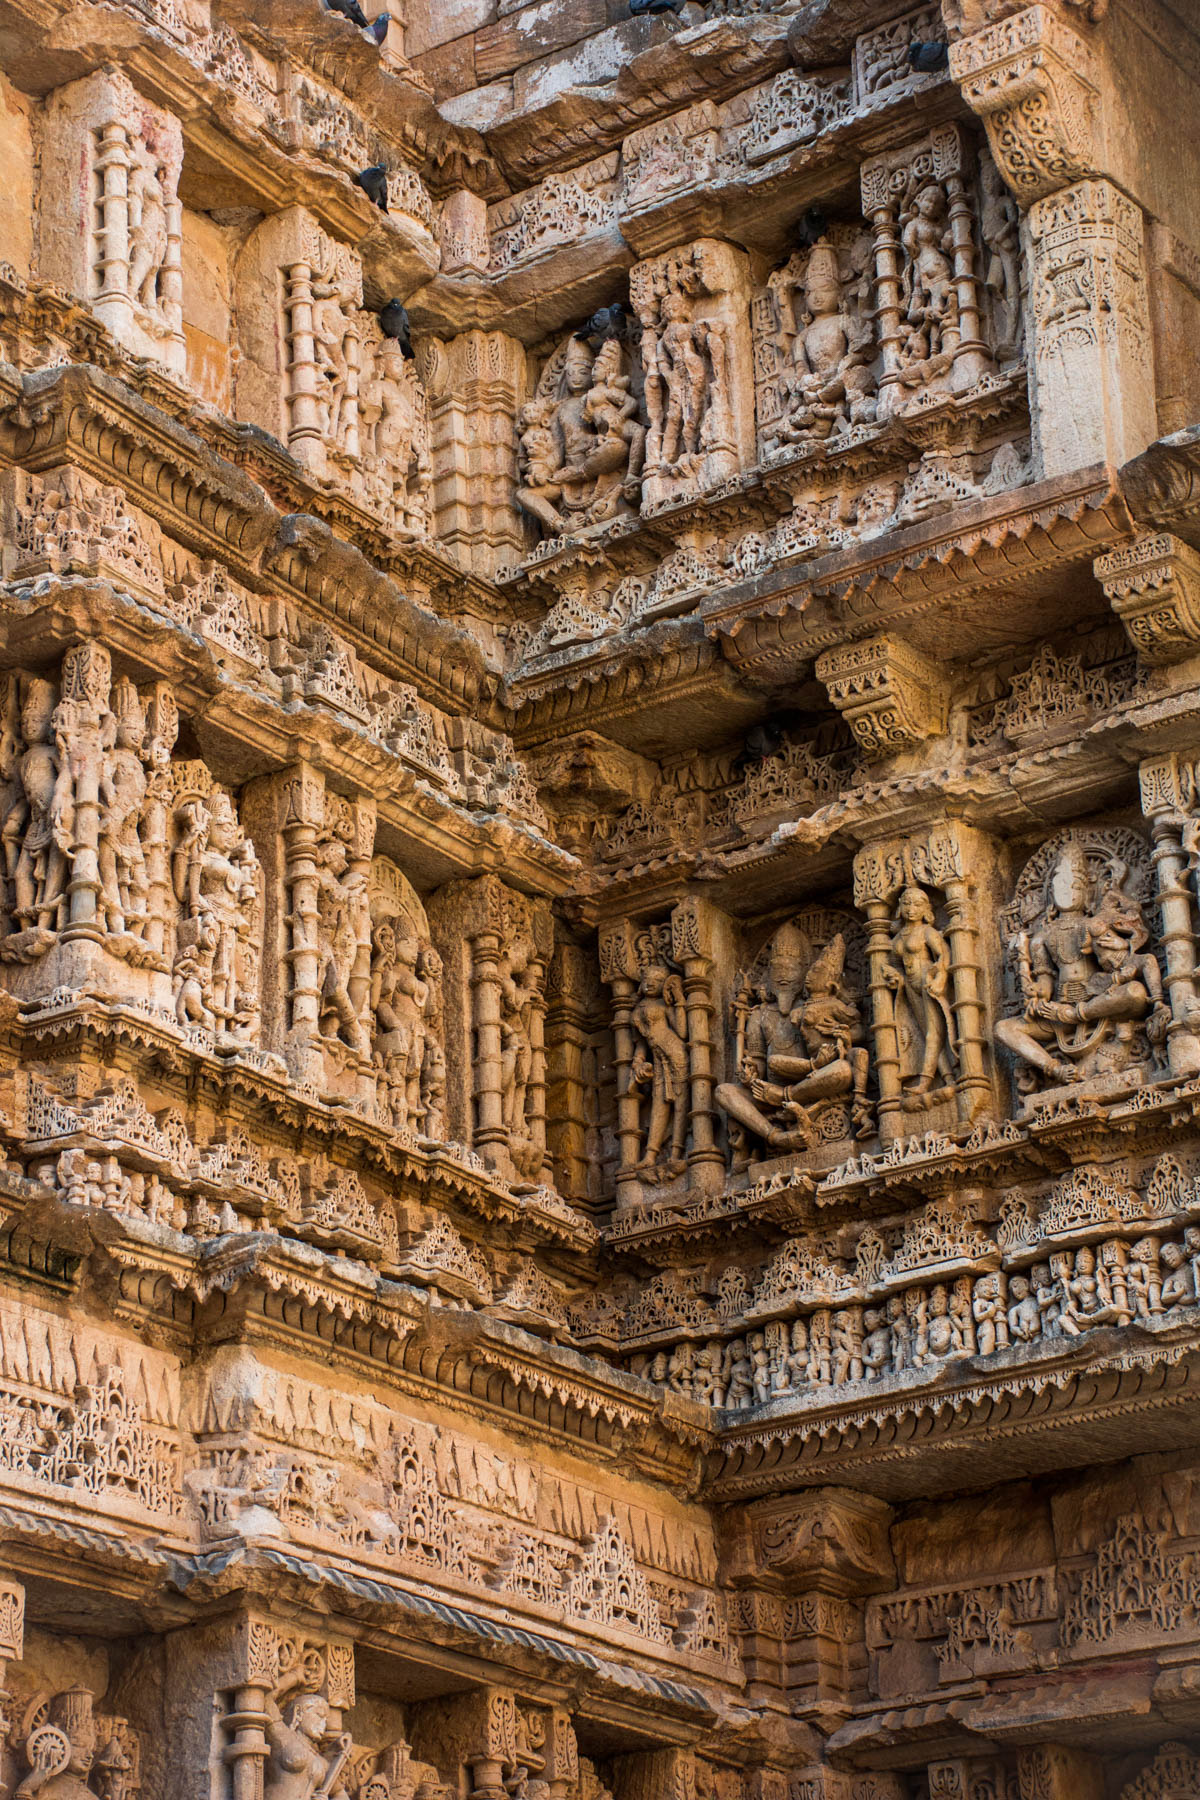 A history of Patan Patola - Detail work in the Rani Ki Vav step well in Gujarat, India - Lost With Purpose